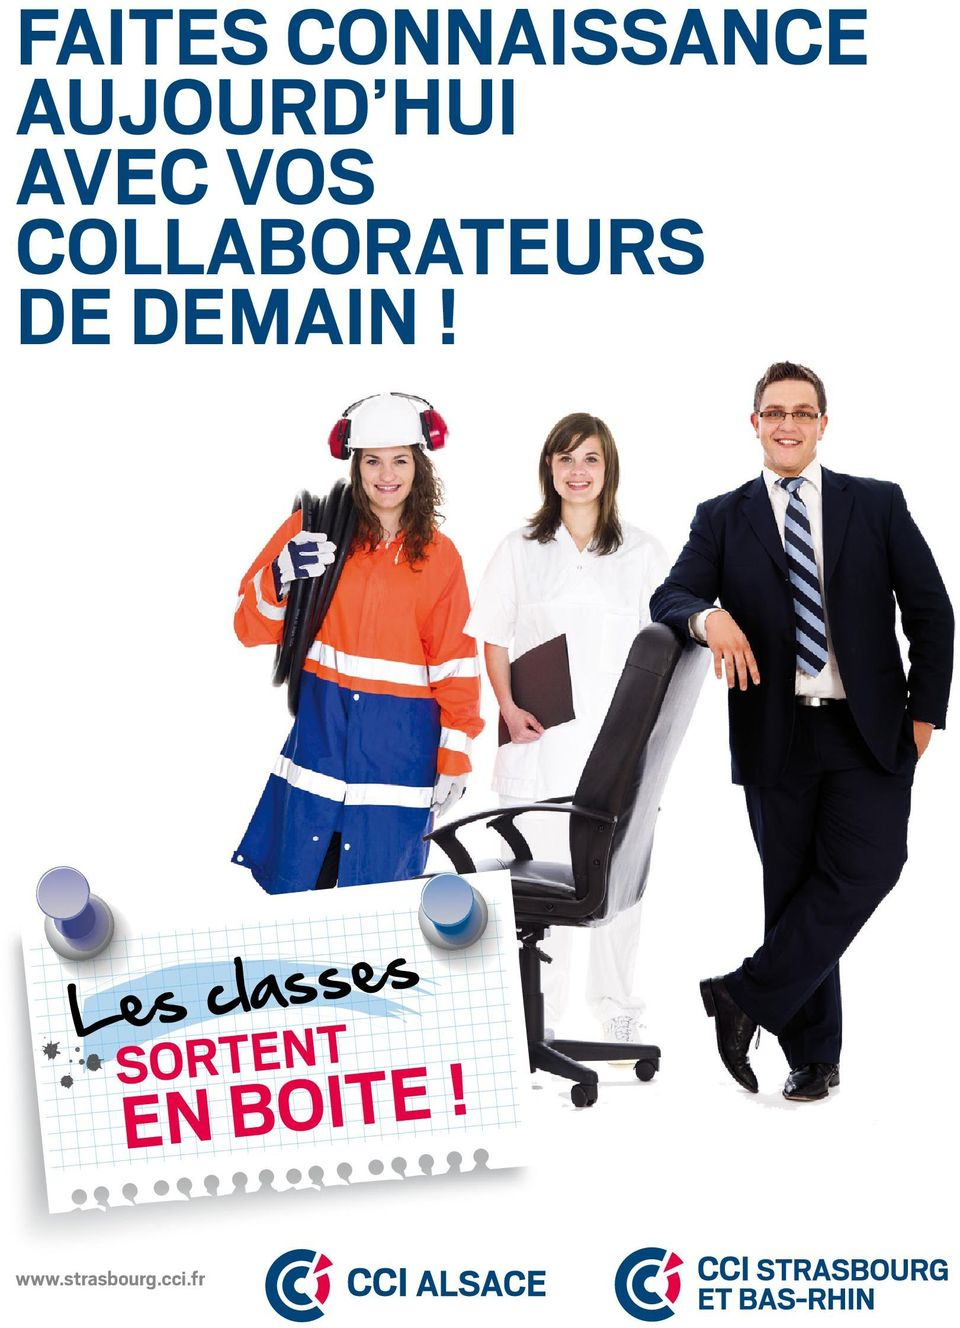 COLLABORATEURS DE